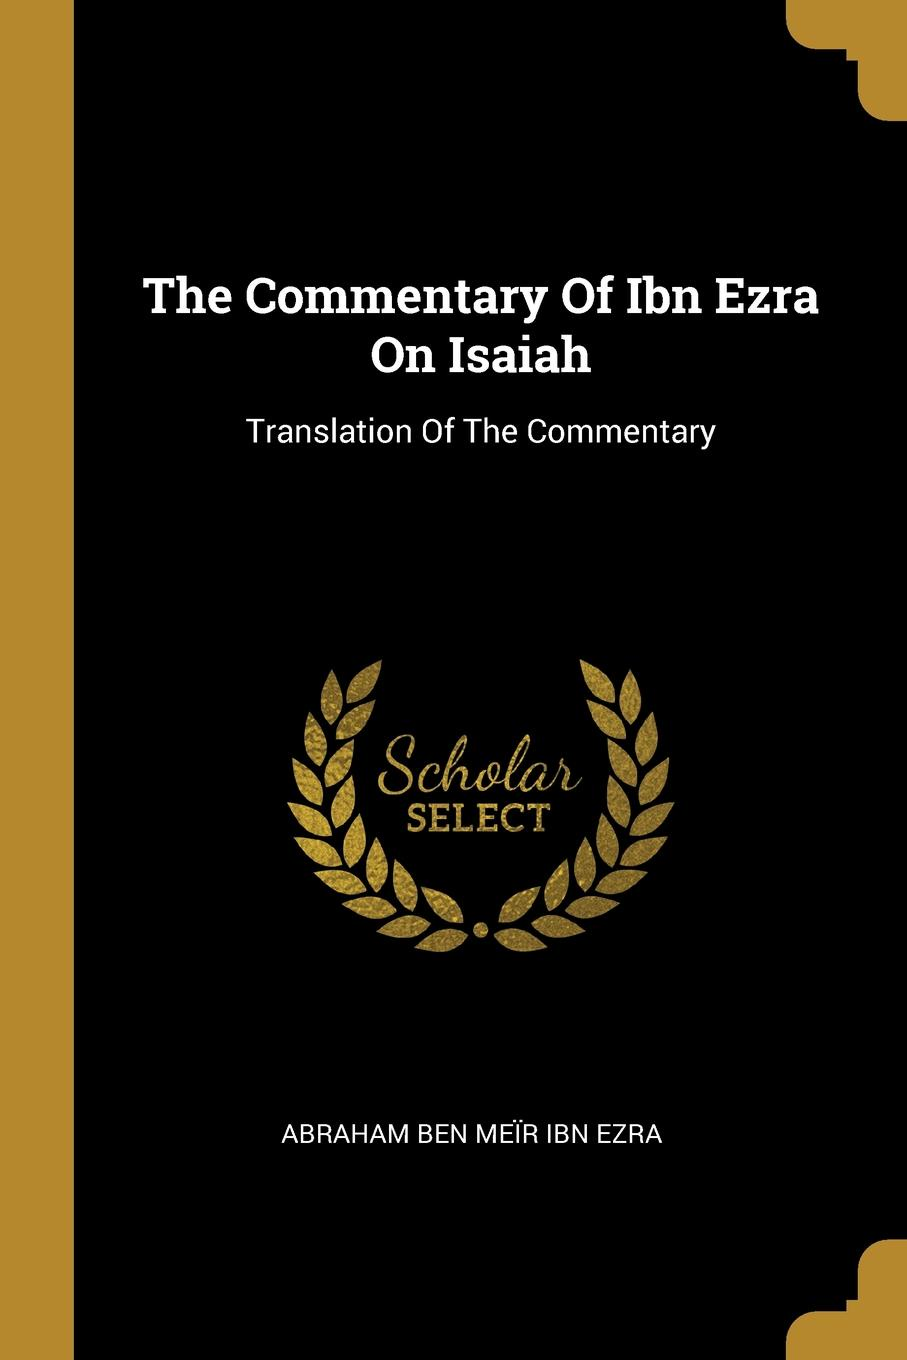 The Commentary Of Ibn Ezra On Isaiah. Translation Of The Commentary